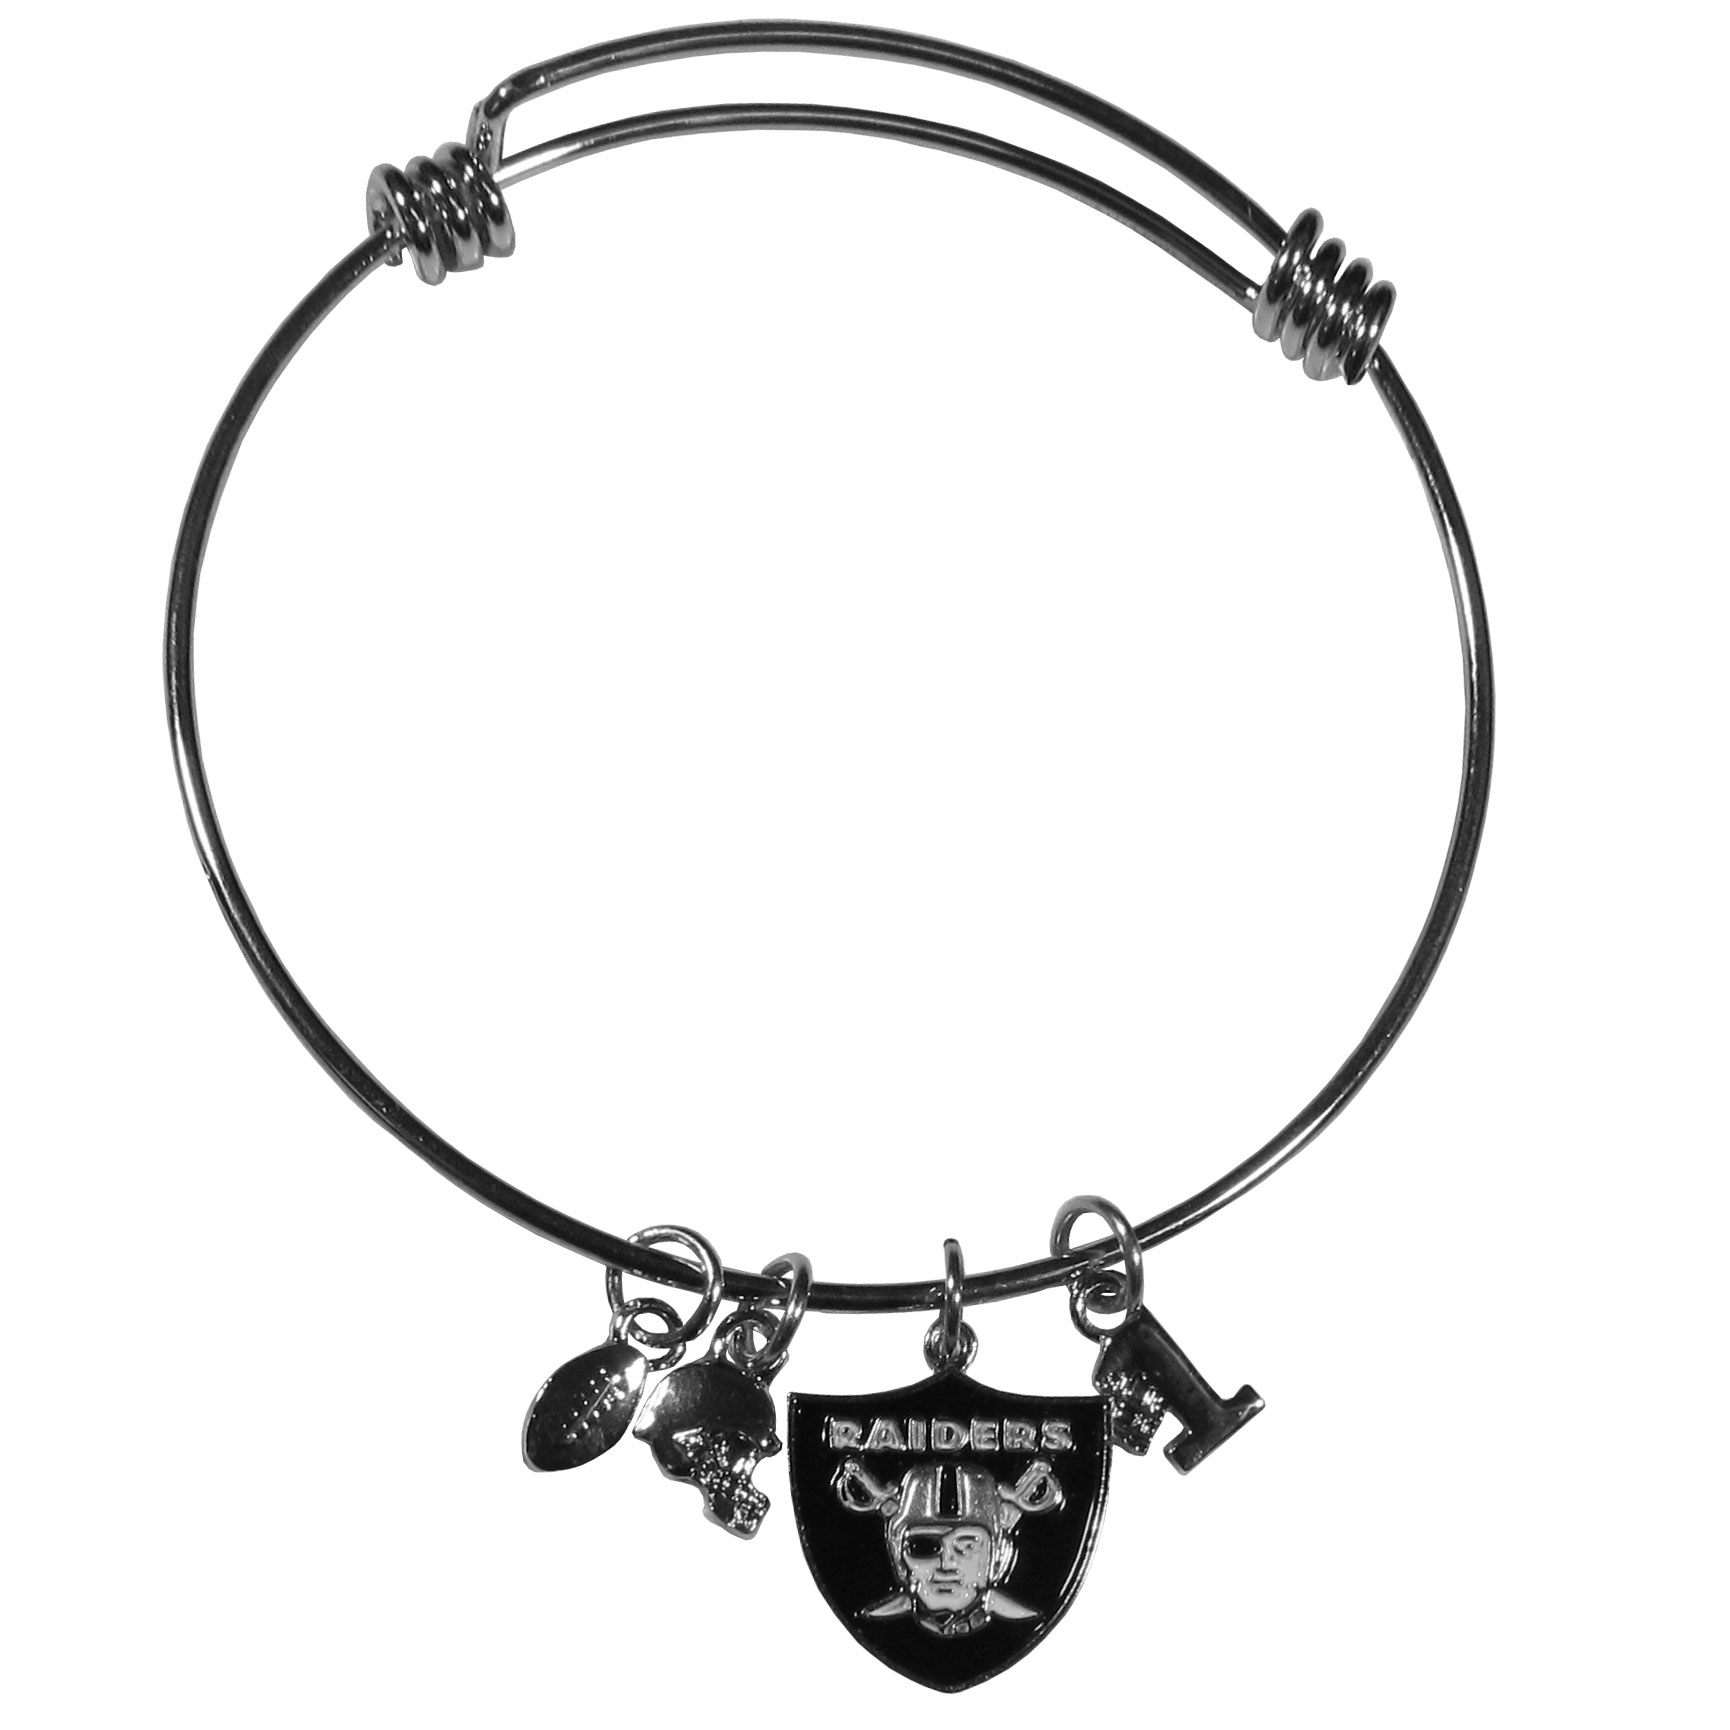 Oakland Raiders Charm Bangle Bracelet - Adjustable wire bracelets are all the rage and this Oakland Raiders bracelet matches the popular trend with your beloved team. The bracelet features 4 charms in total, each feature exceptional detail and the team charm has enameled team colors.